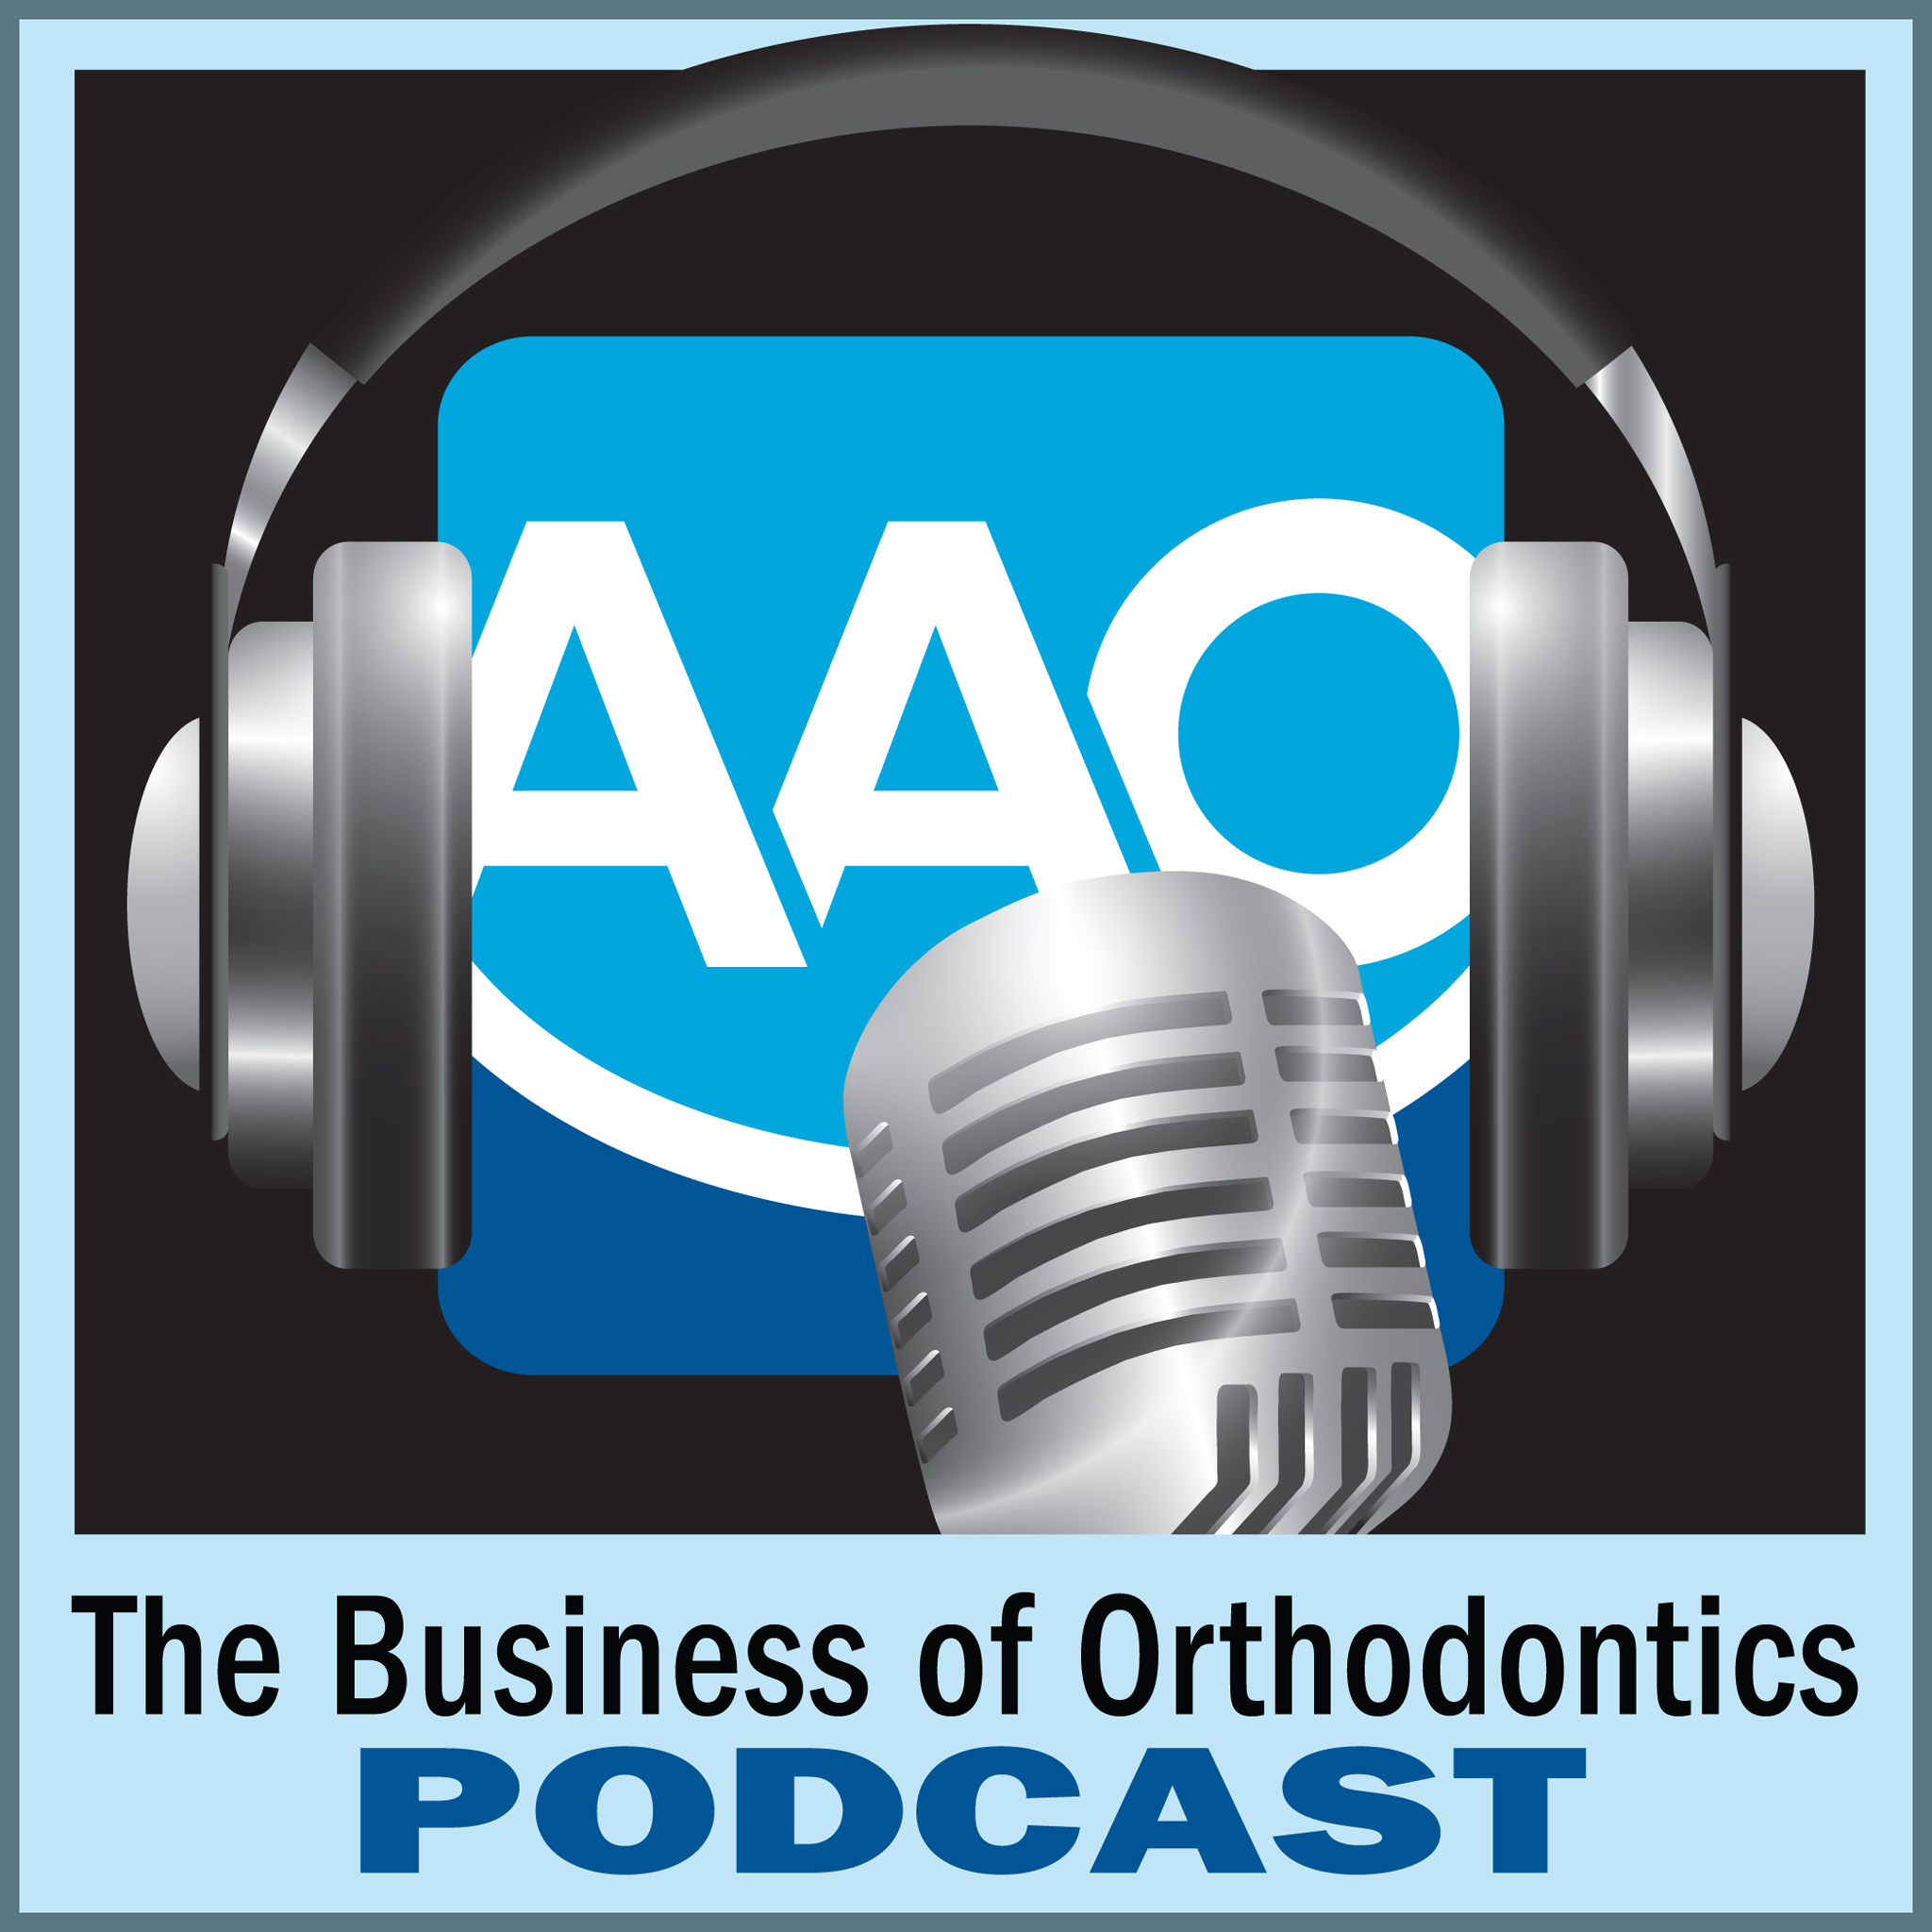 The Business of Orthodontics Podcast - Episode 08